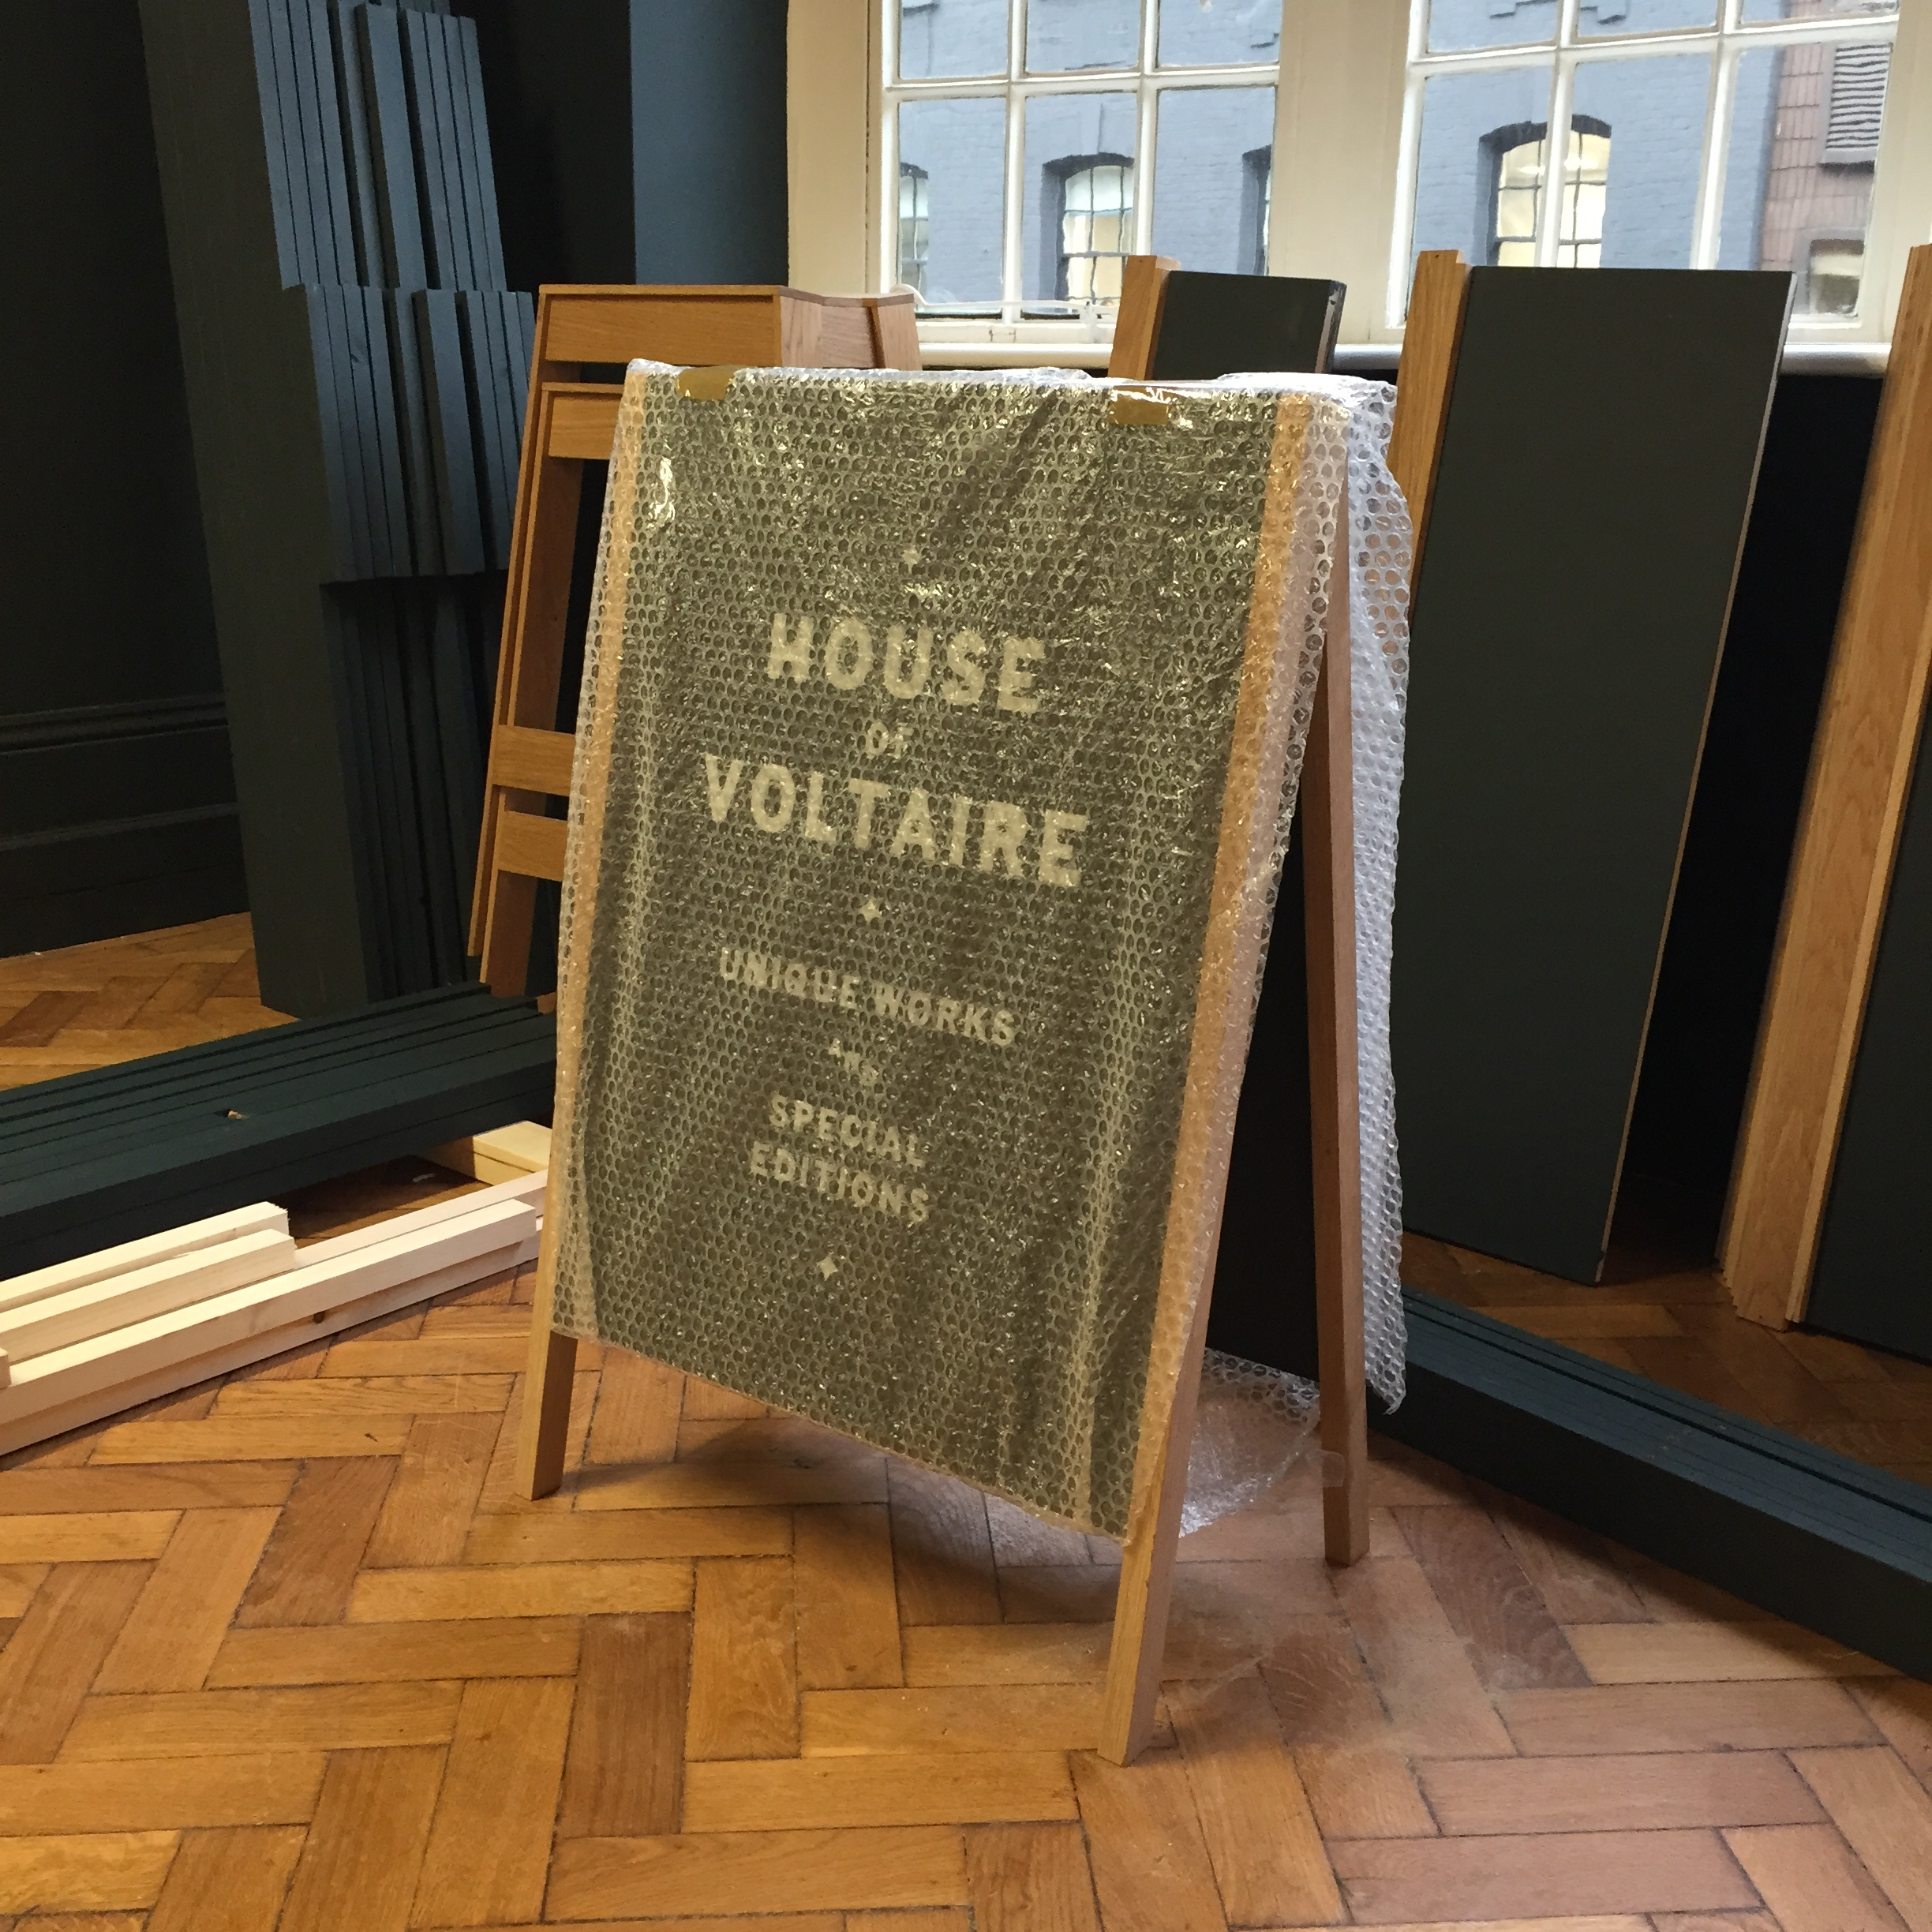 House of Voltaire  November 2014  Once again we designed and built Studio Voltaire's biannual pop up shop which opens 12th Nov at 39-40 Albermarle Street, in Mayfair, London. Support this year is from fashion house Chloé, Photos of the finished store to follow soon.